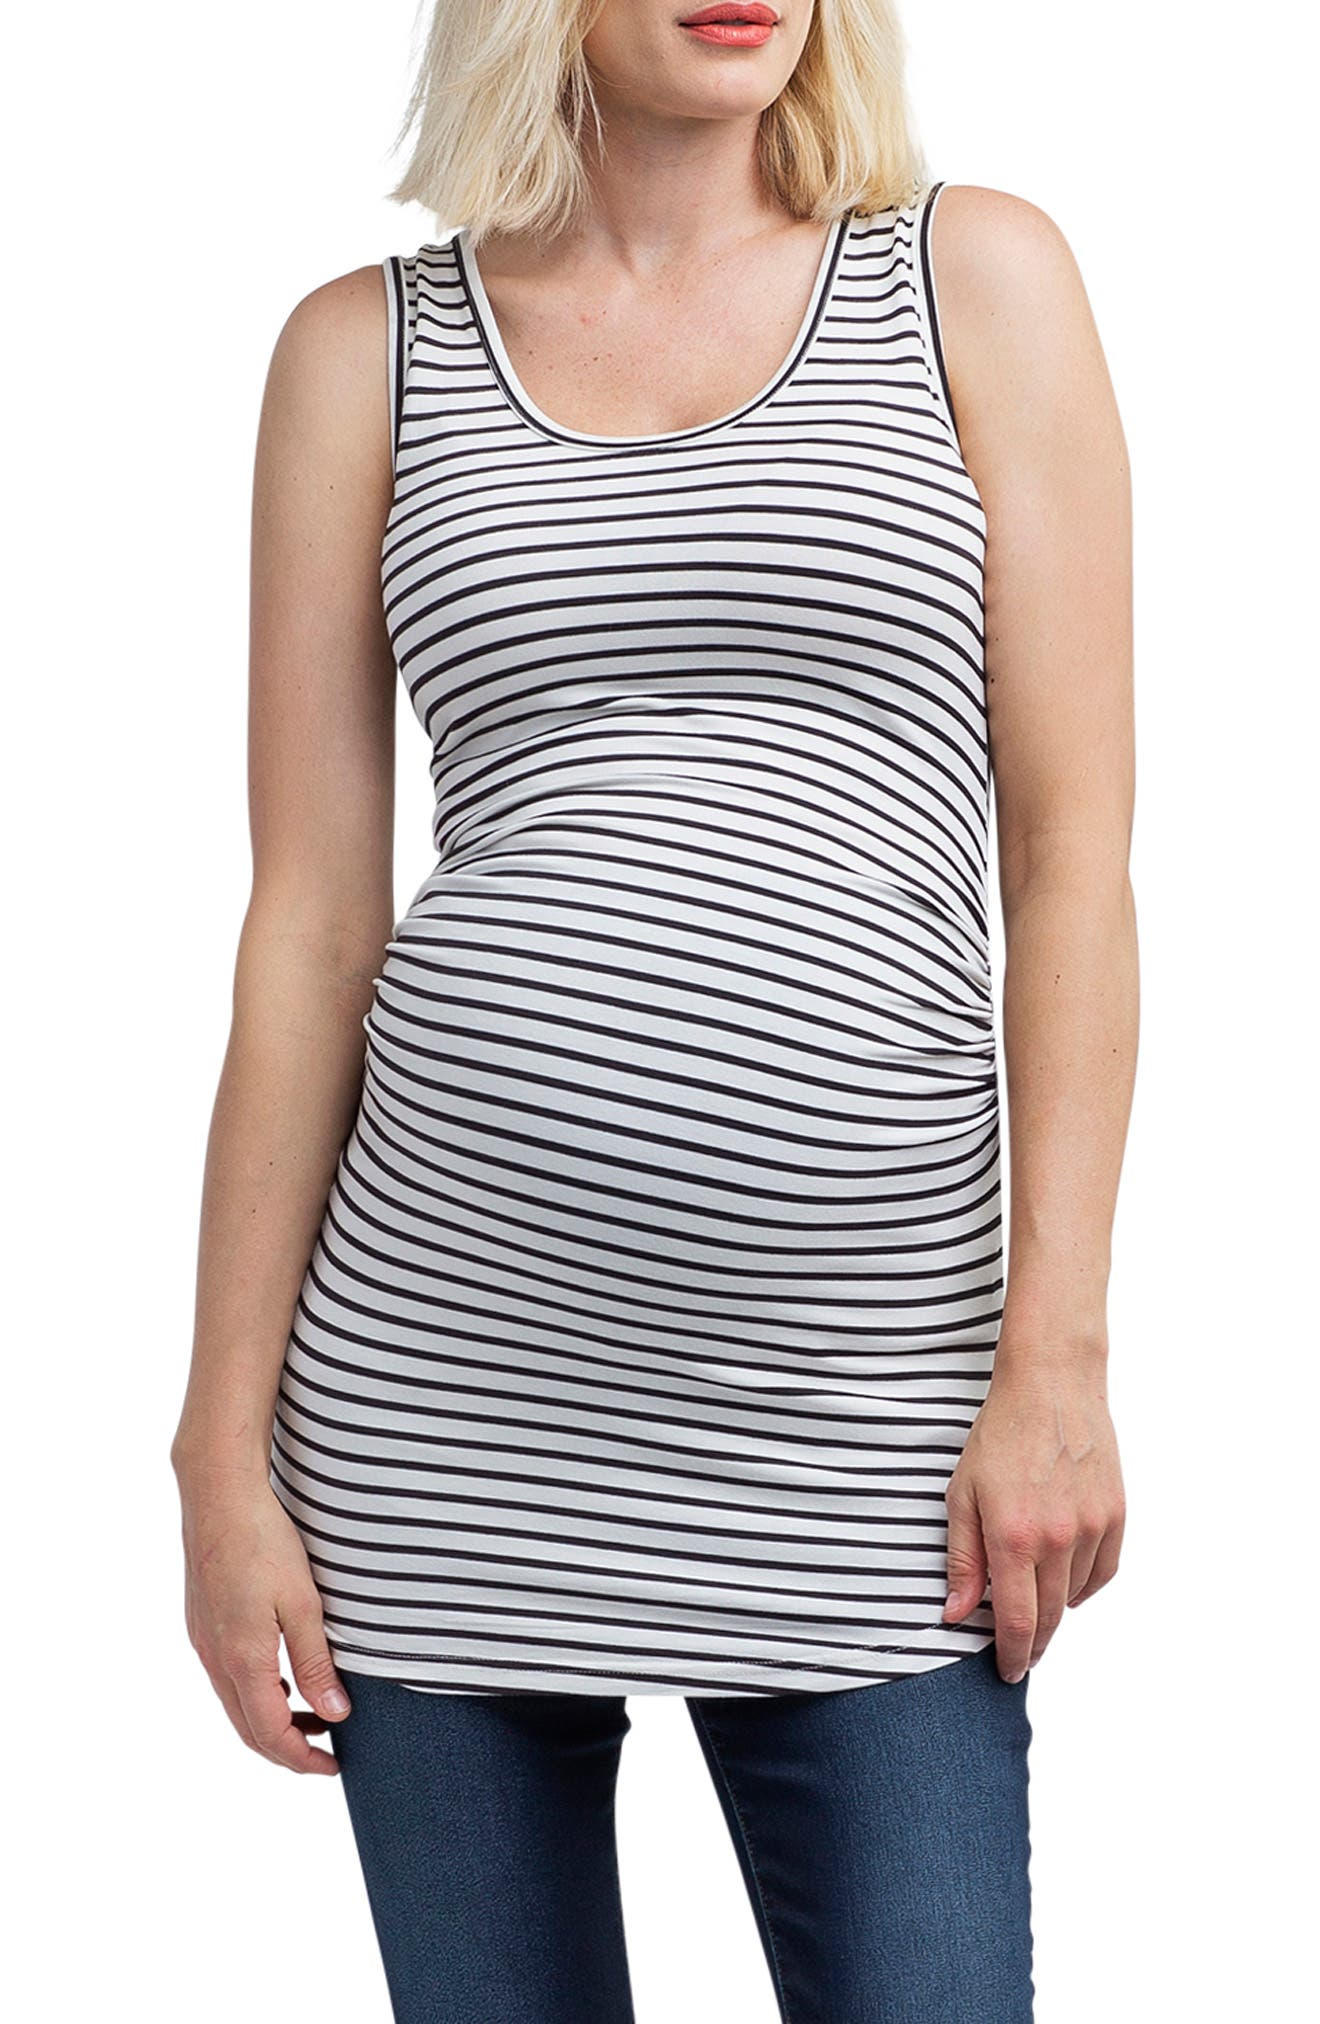 NOM MATERNITY,                             'Joey' Ruched Maternity Tank,                             Main thumbnail 1, color,                             BLACK/ WHITE STRIPE